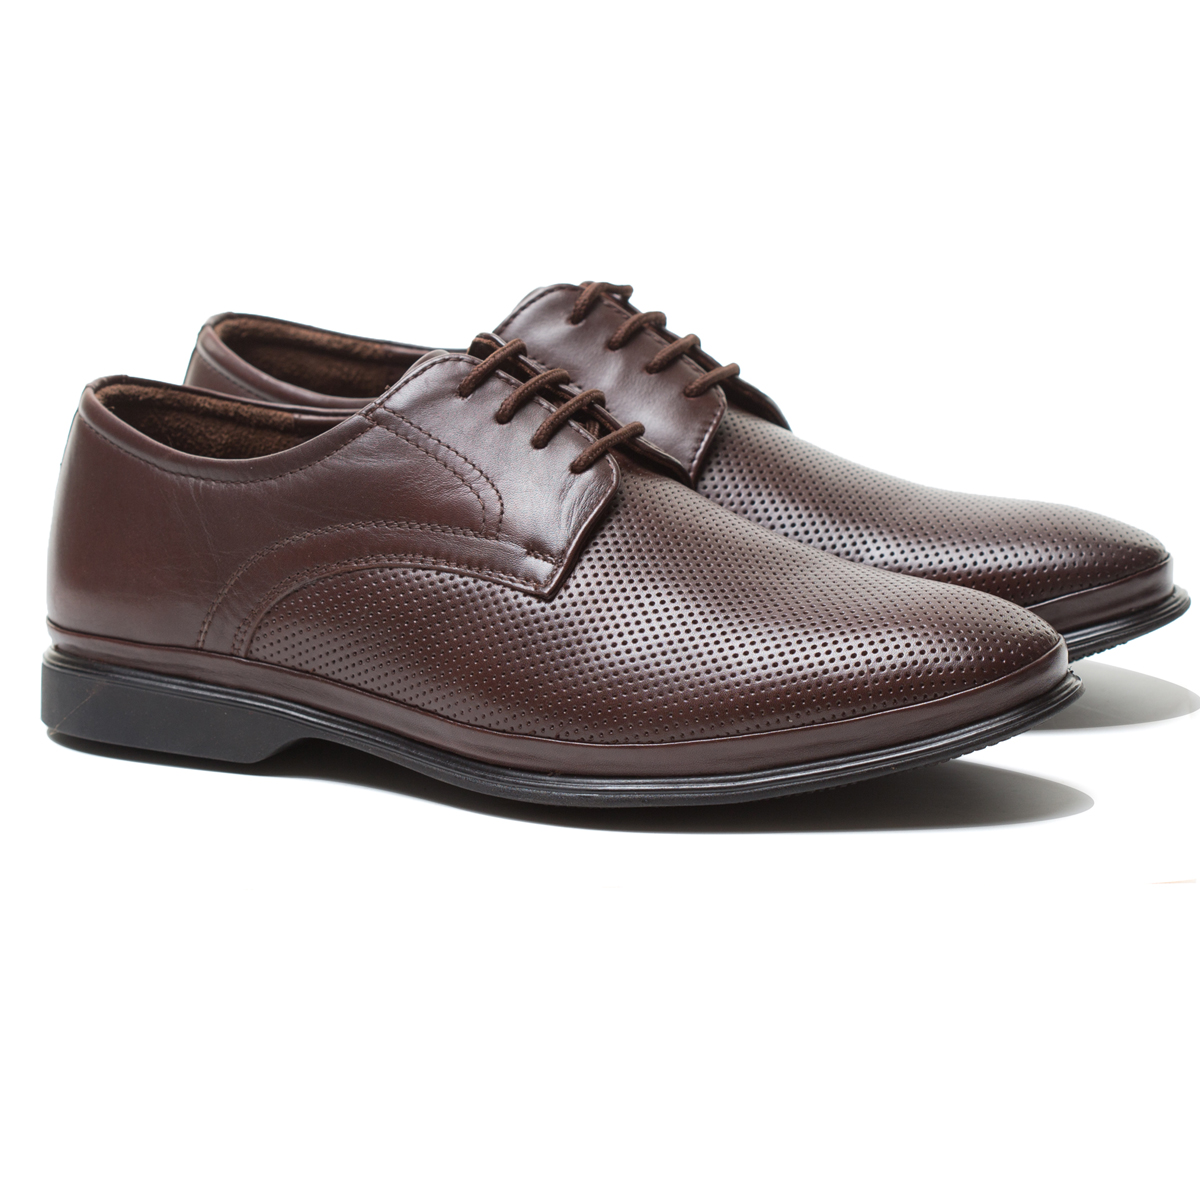 Buy Von Wellx Germany Comfort Coen Brown Shoes Online in Riyadh